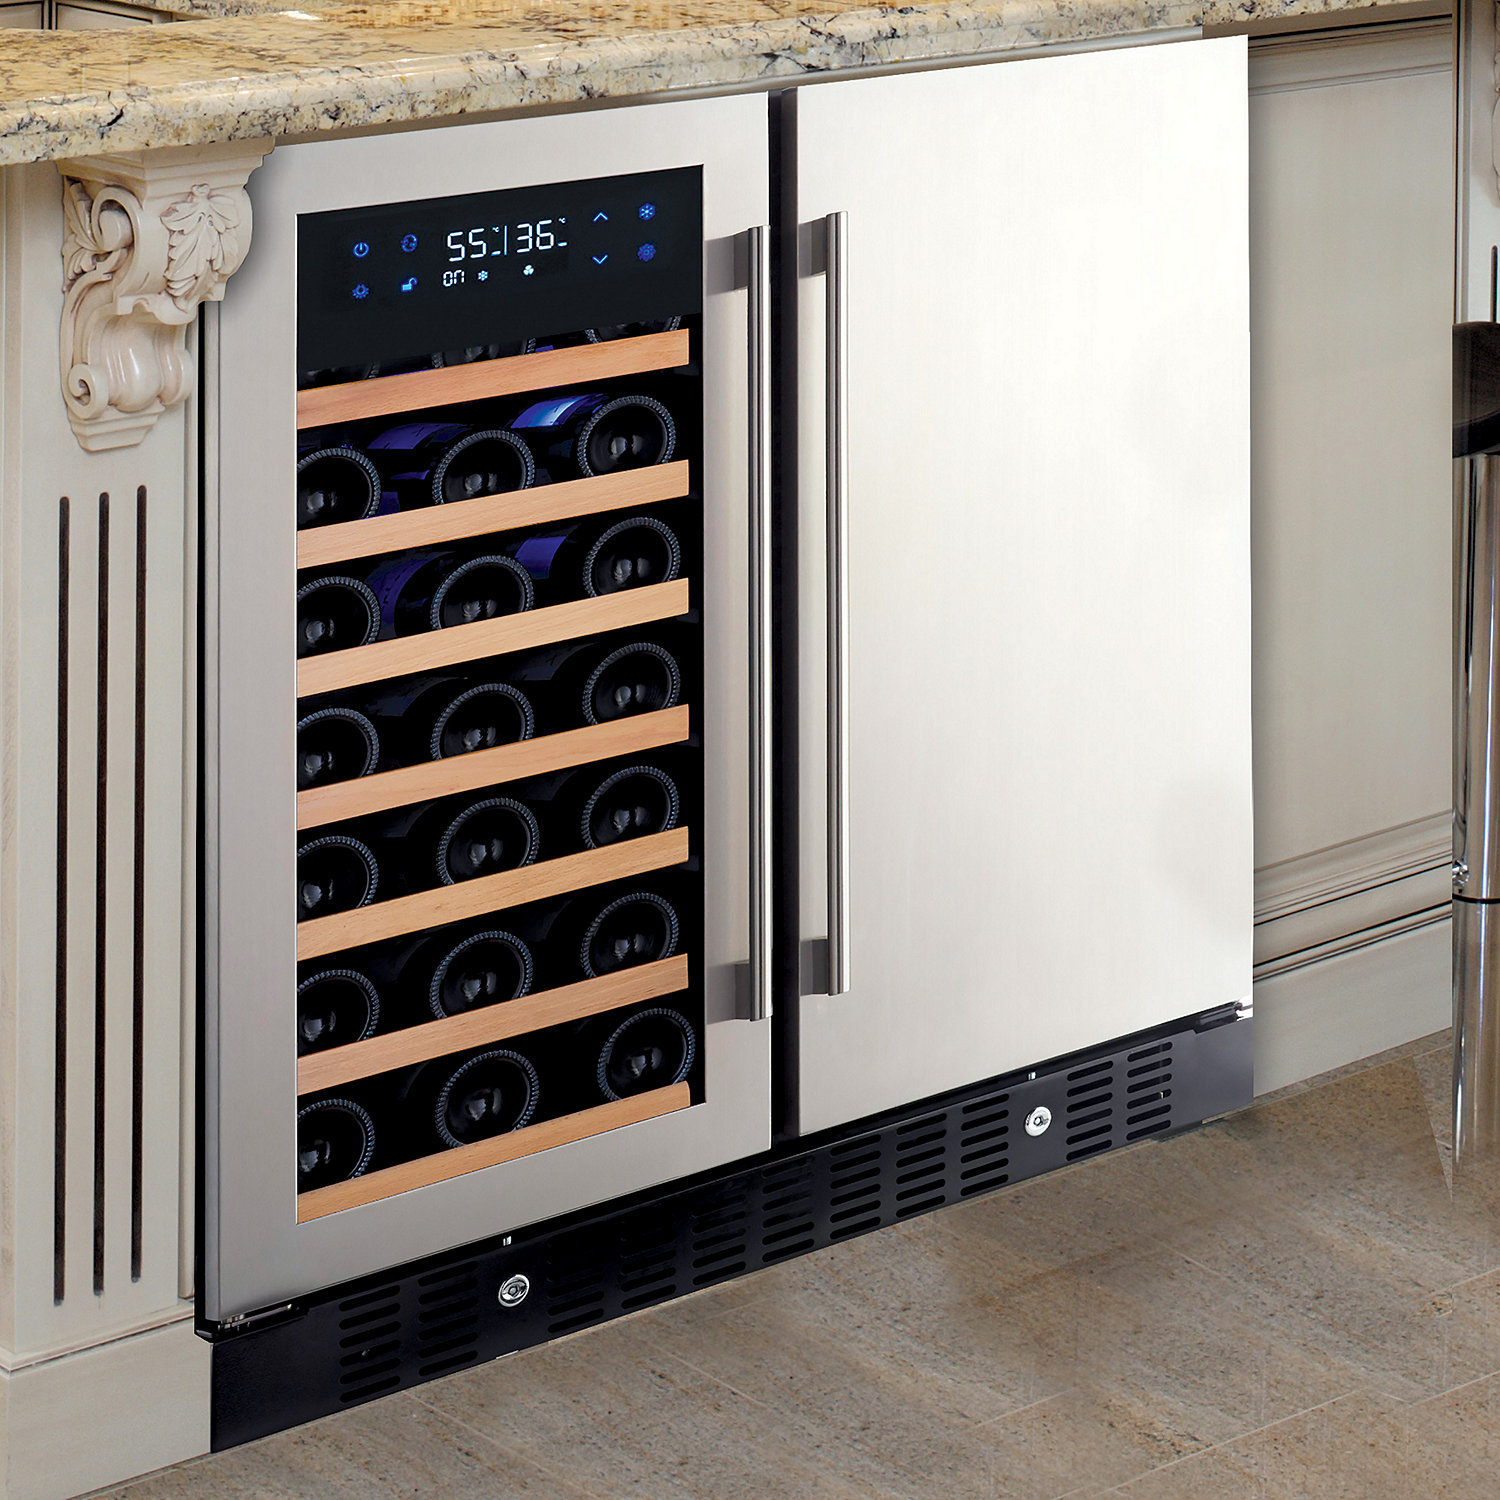 N FINITY PRO HDX Wine and Beverage Center - Wine Enthusiast 2b836fafd